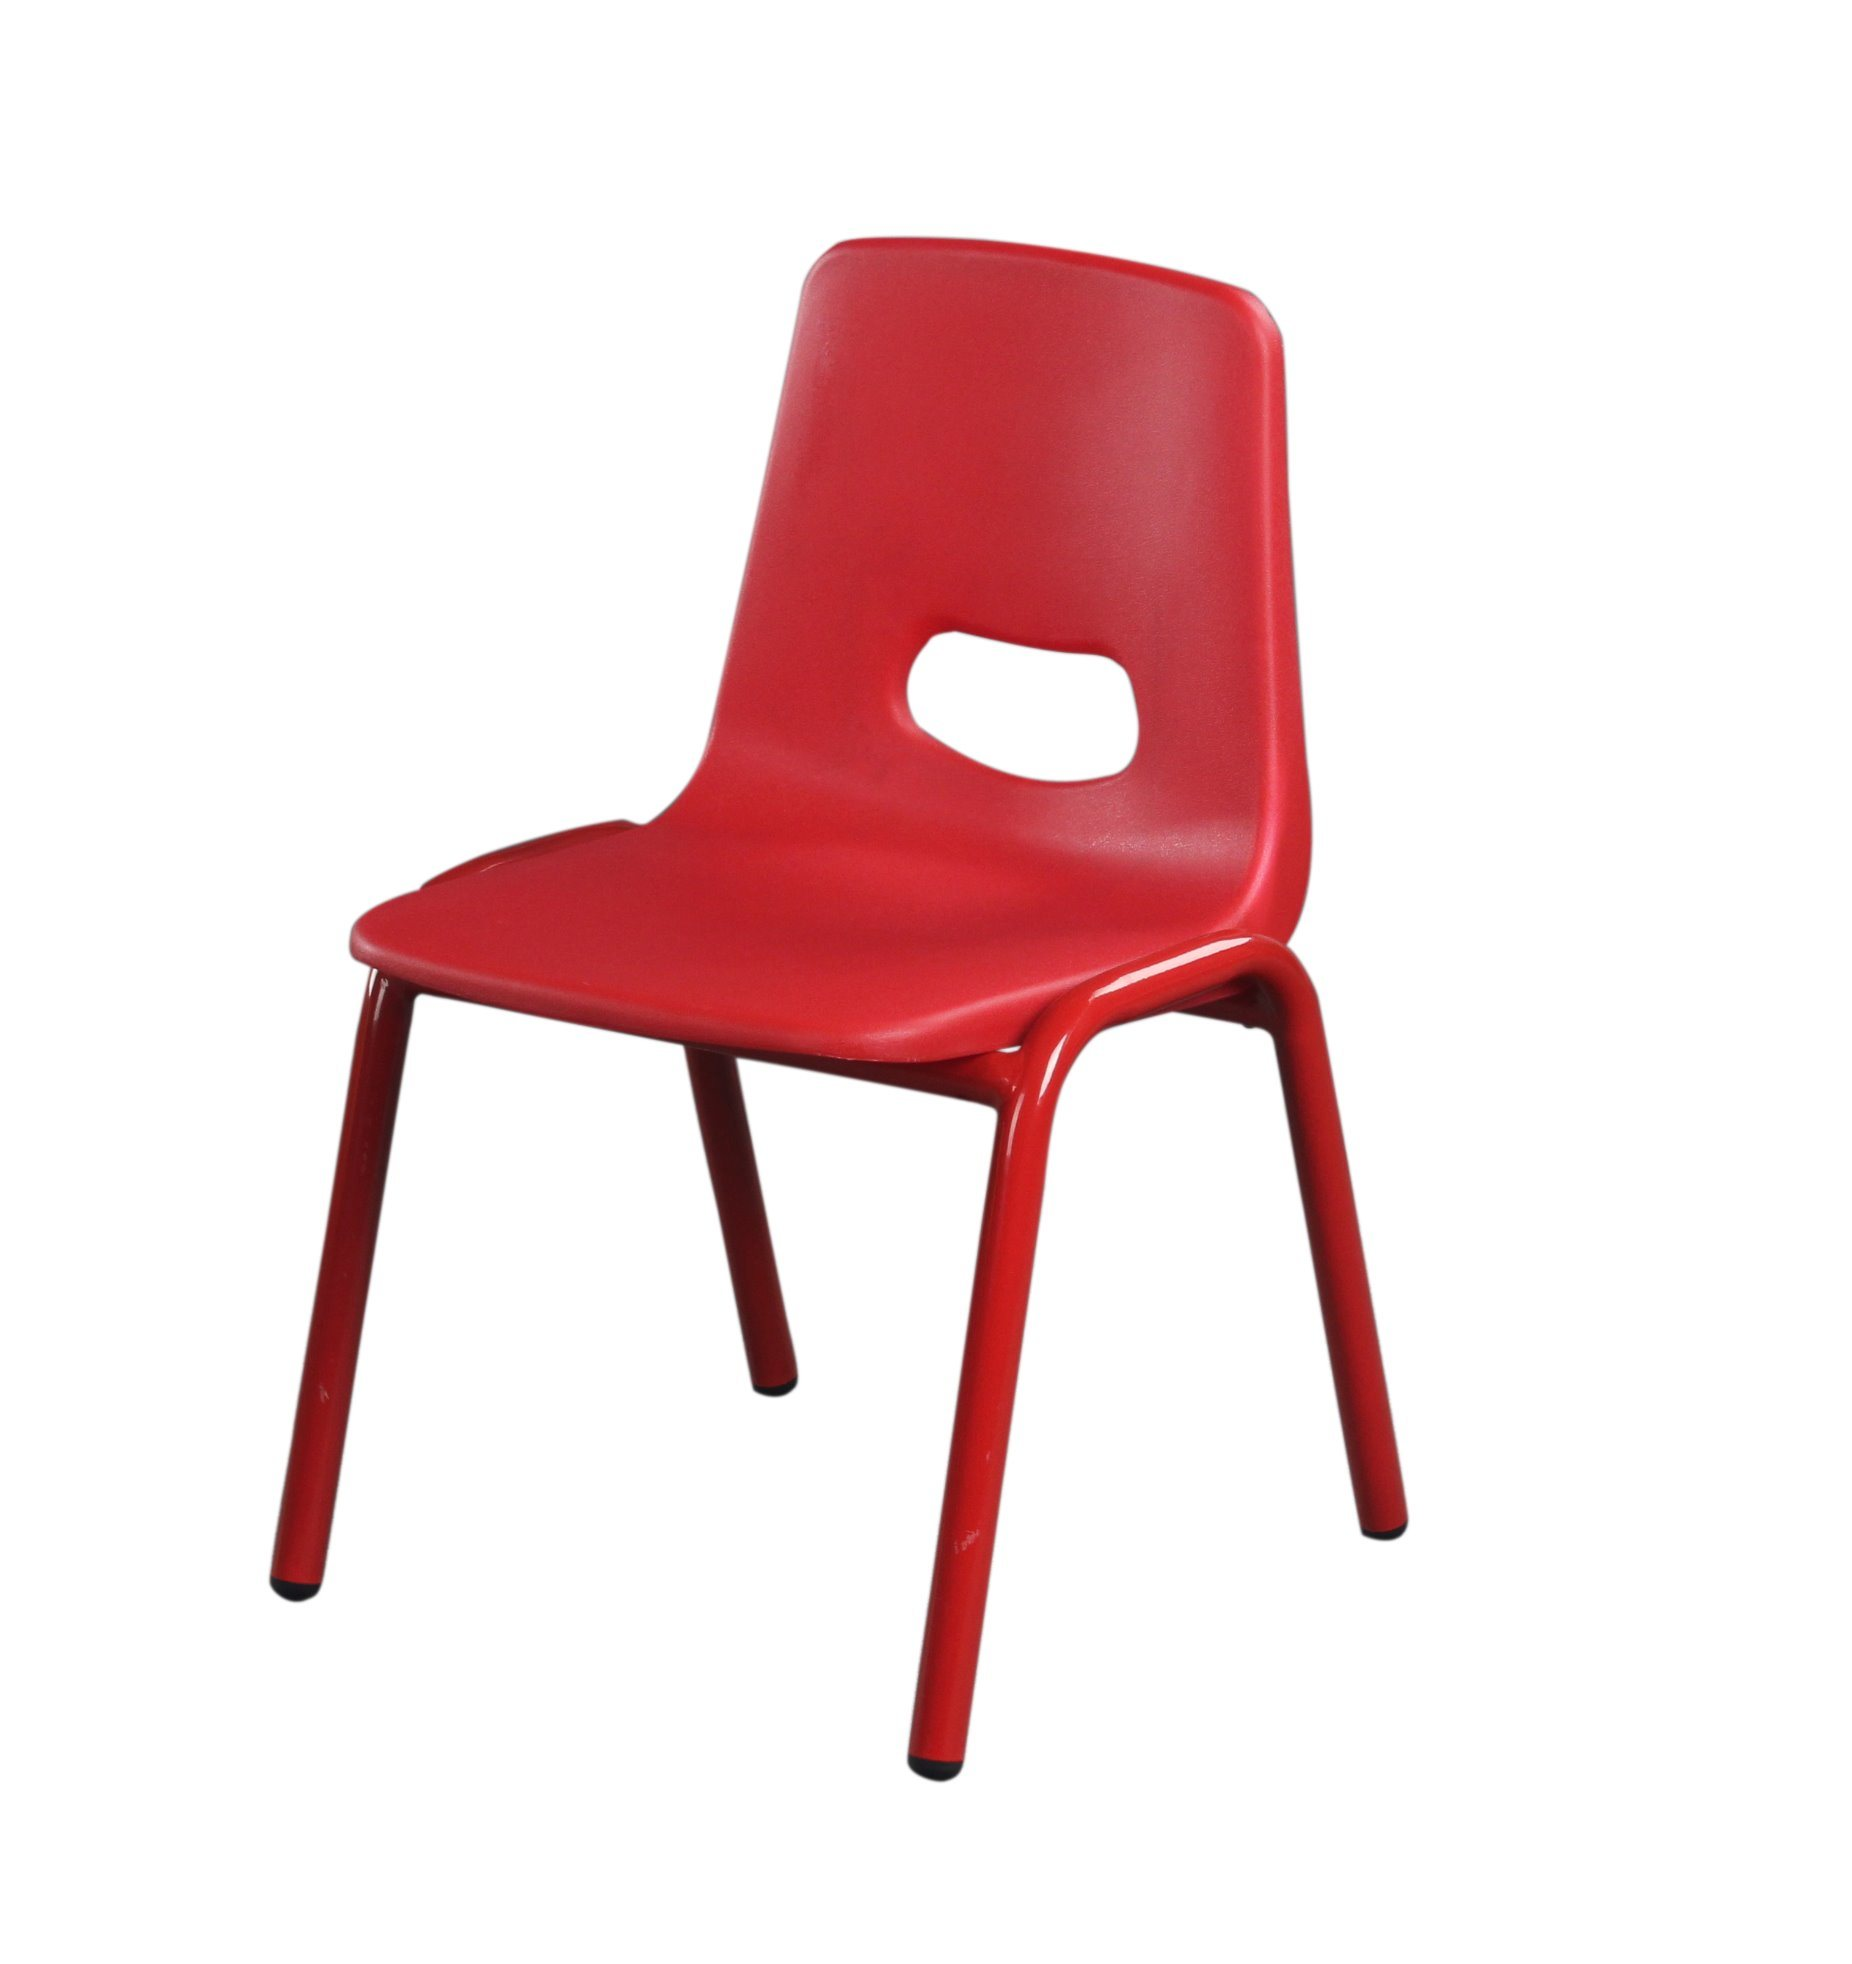 Plastic Kids Chairs Hot Item Multi Purpose Red Shell Kids Plastic Chair